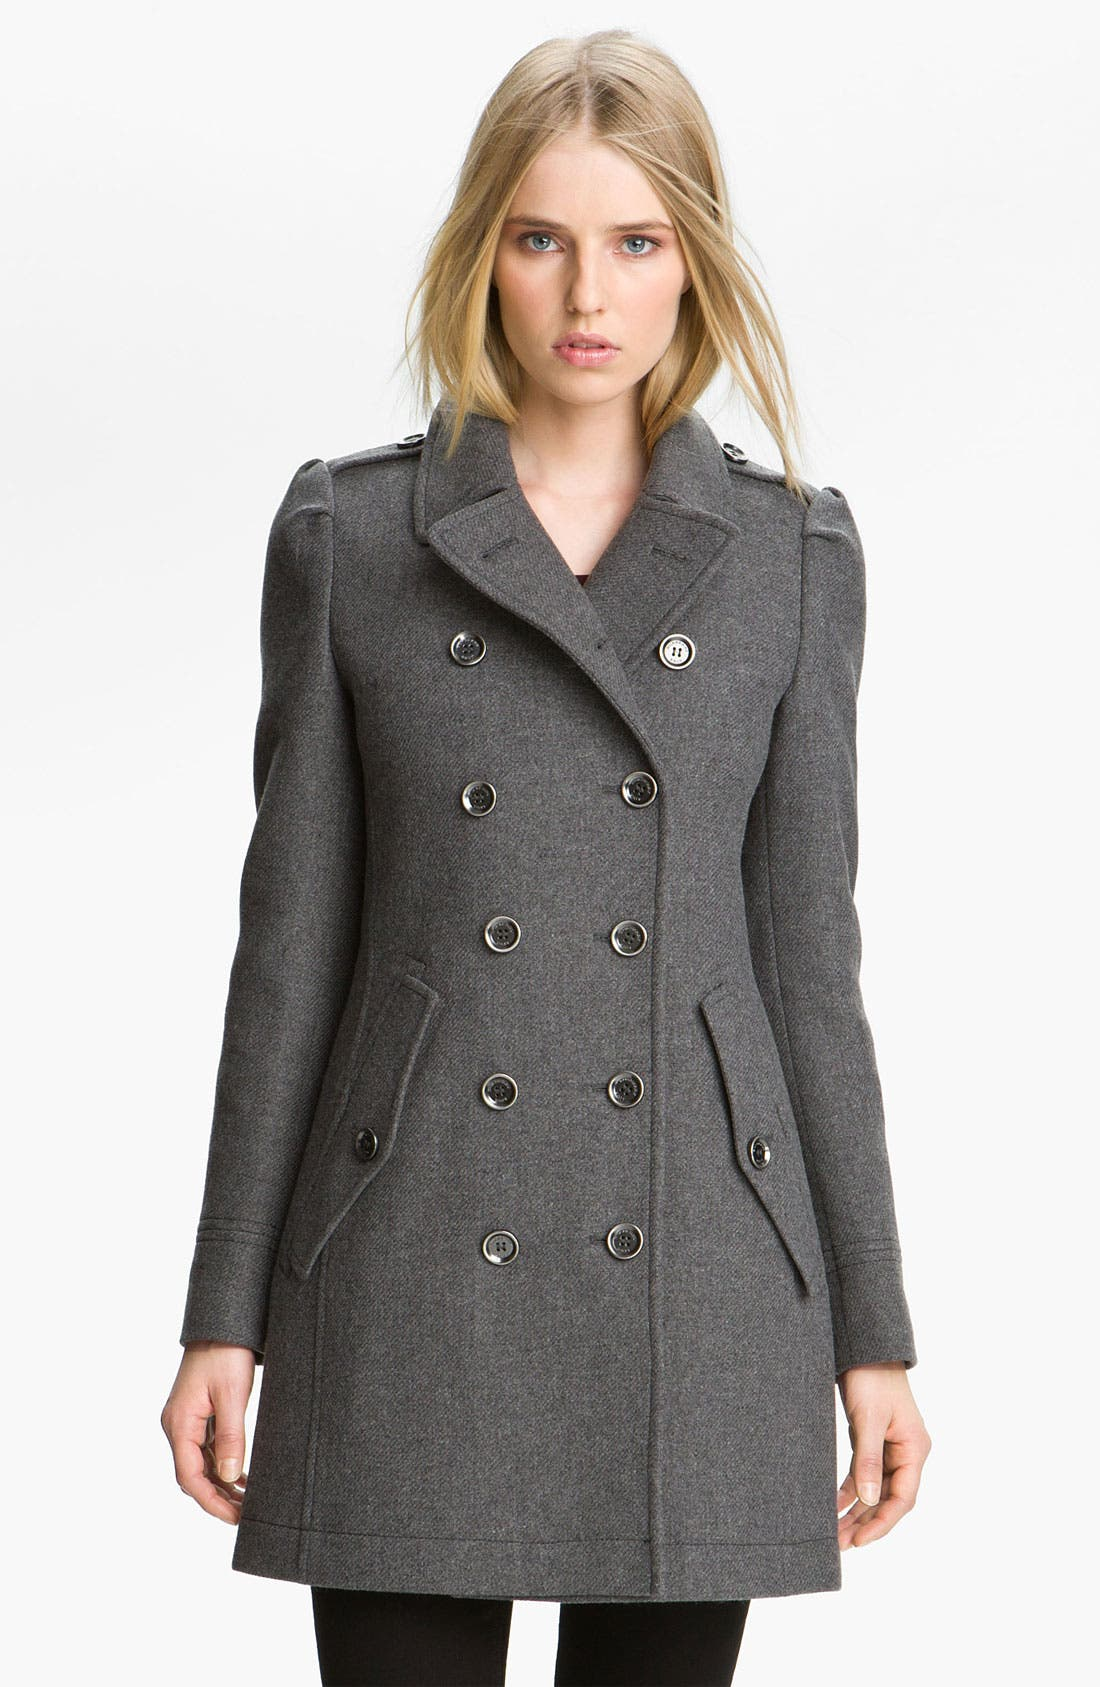 Alternate Image 1 Selected - Burberry Brit Wool Blend Coat